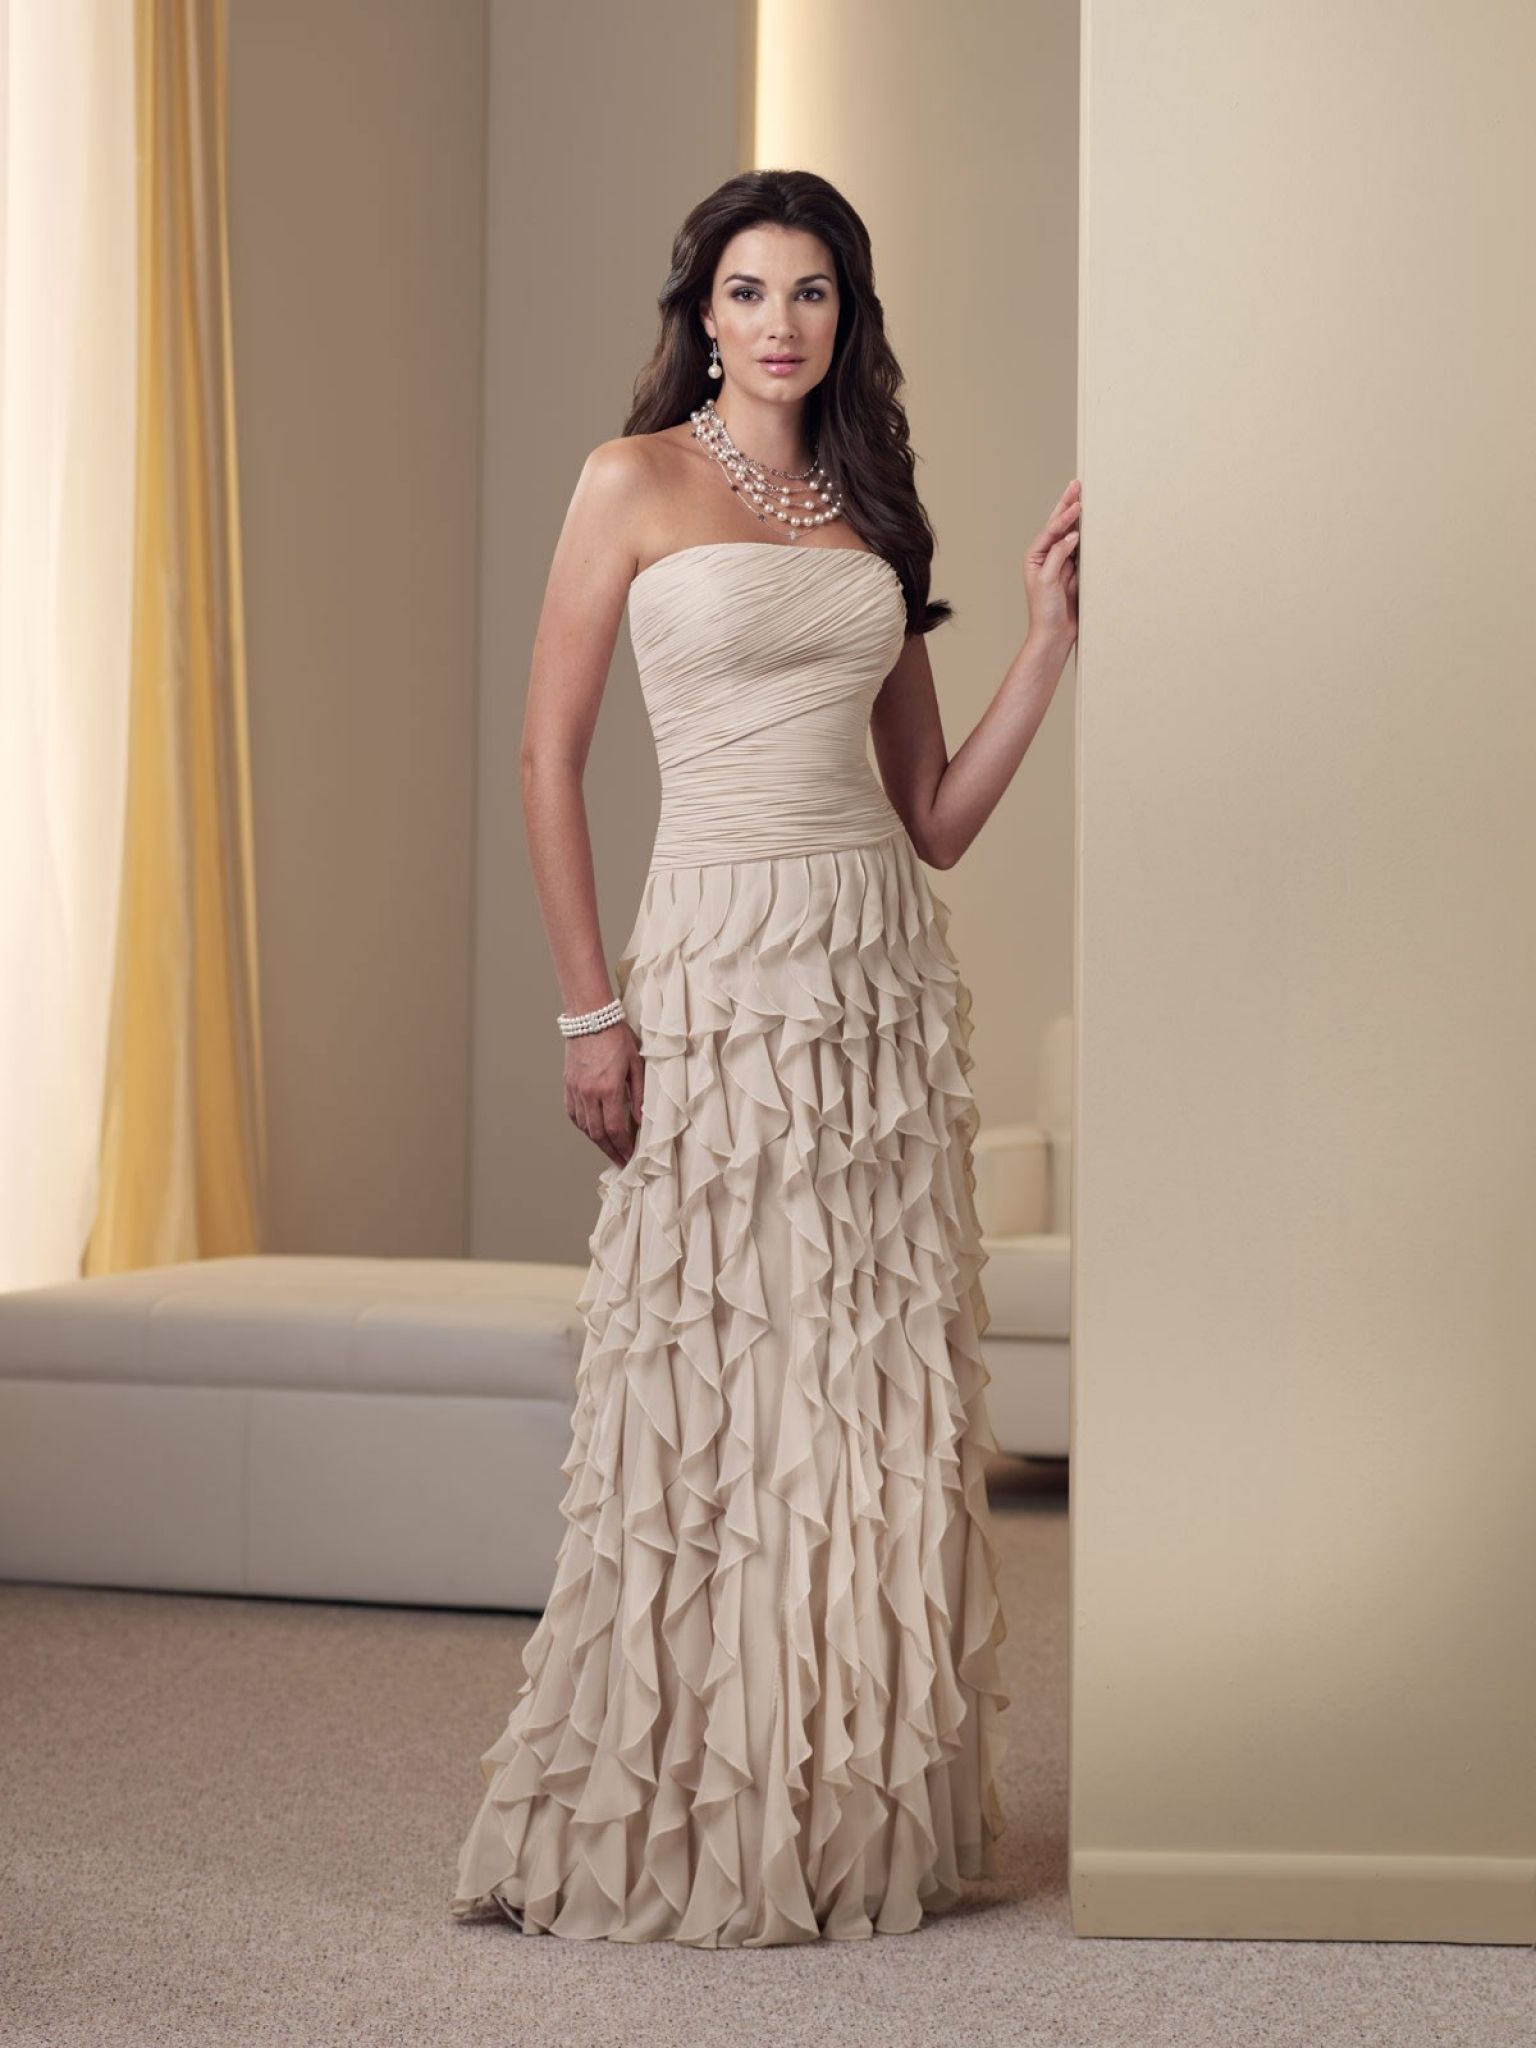 Best beach wedding dresses for guests  mother of the bride dress for beach wedding  womenus dresses for